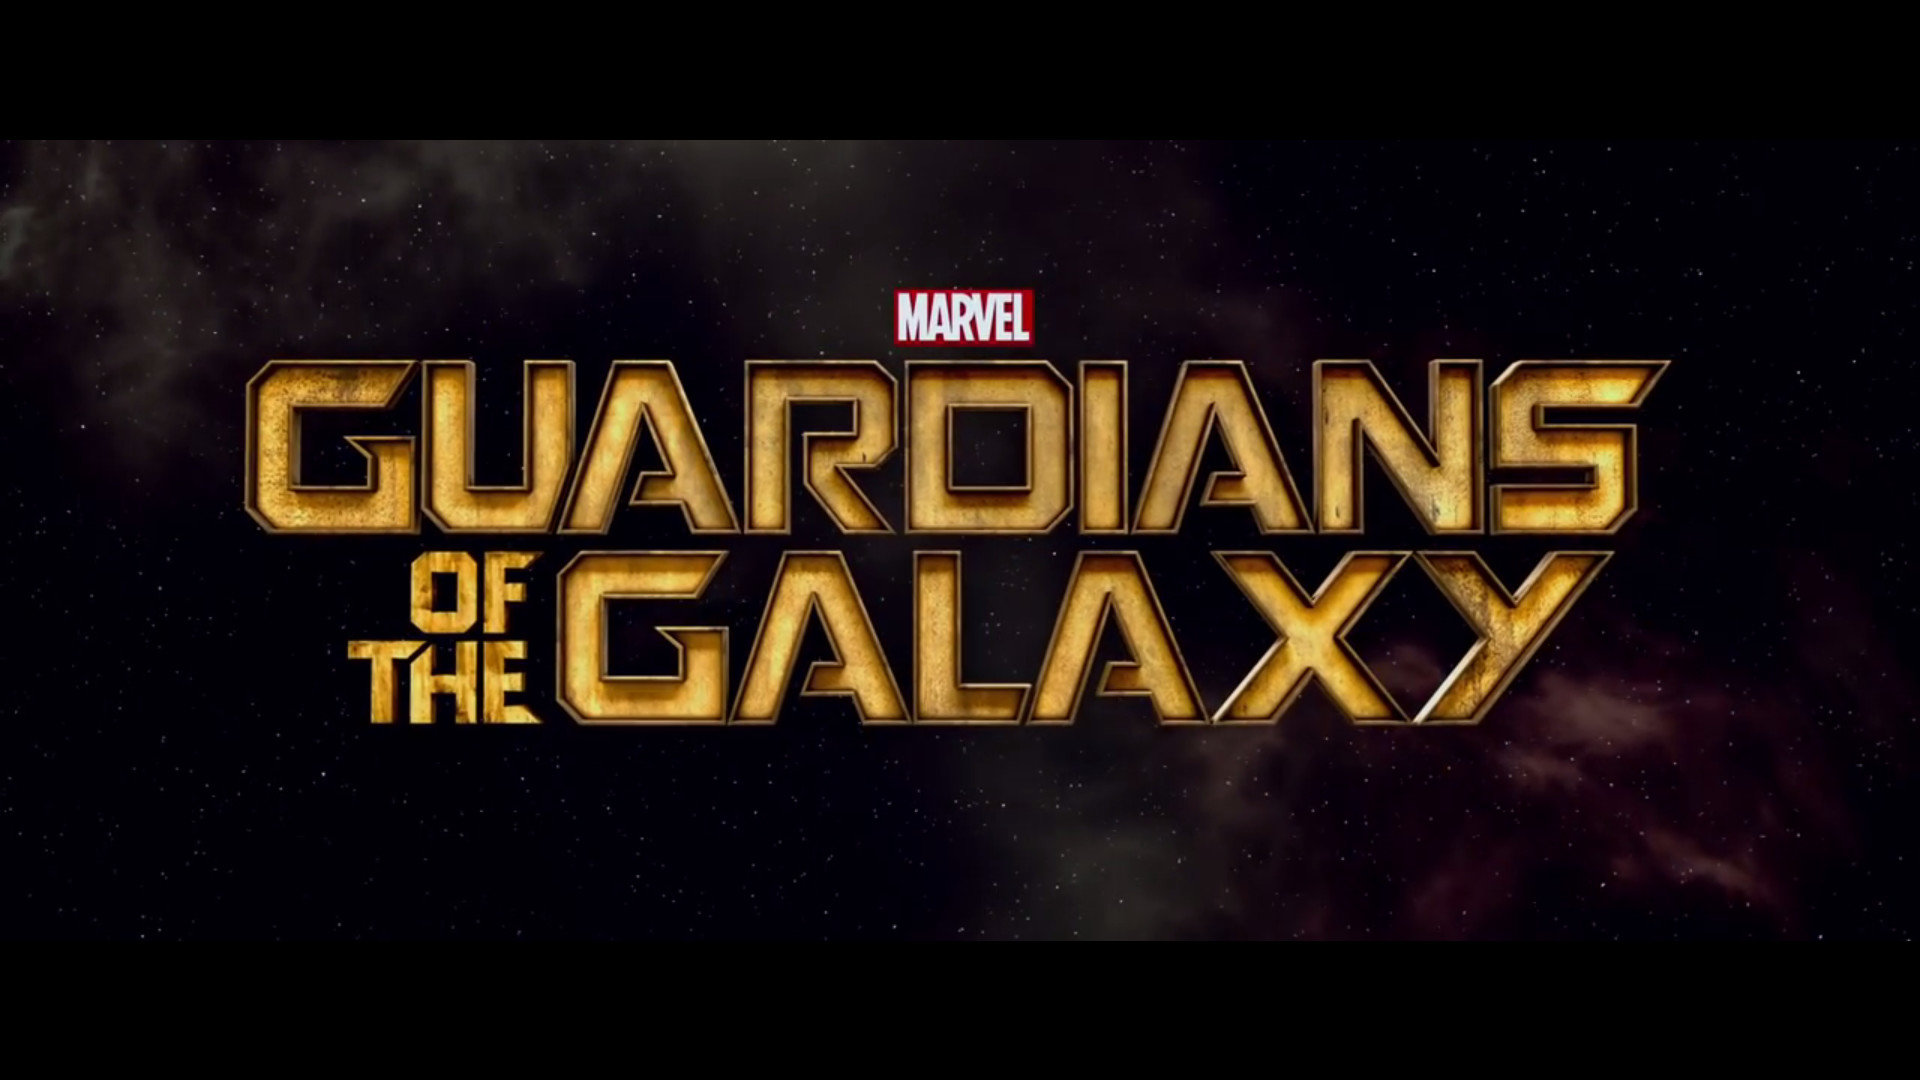 Guardians Of The Galaxy Wallpapers 1920x1080 Full Hd 1080p